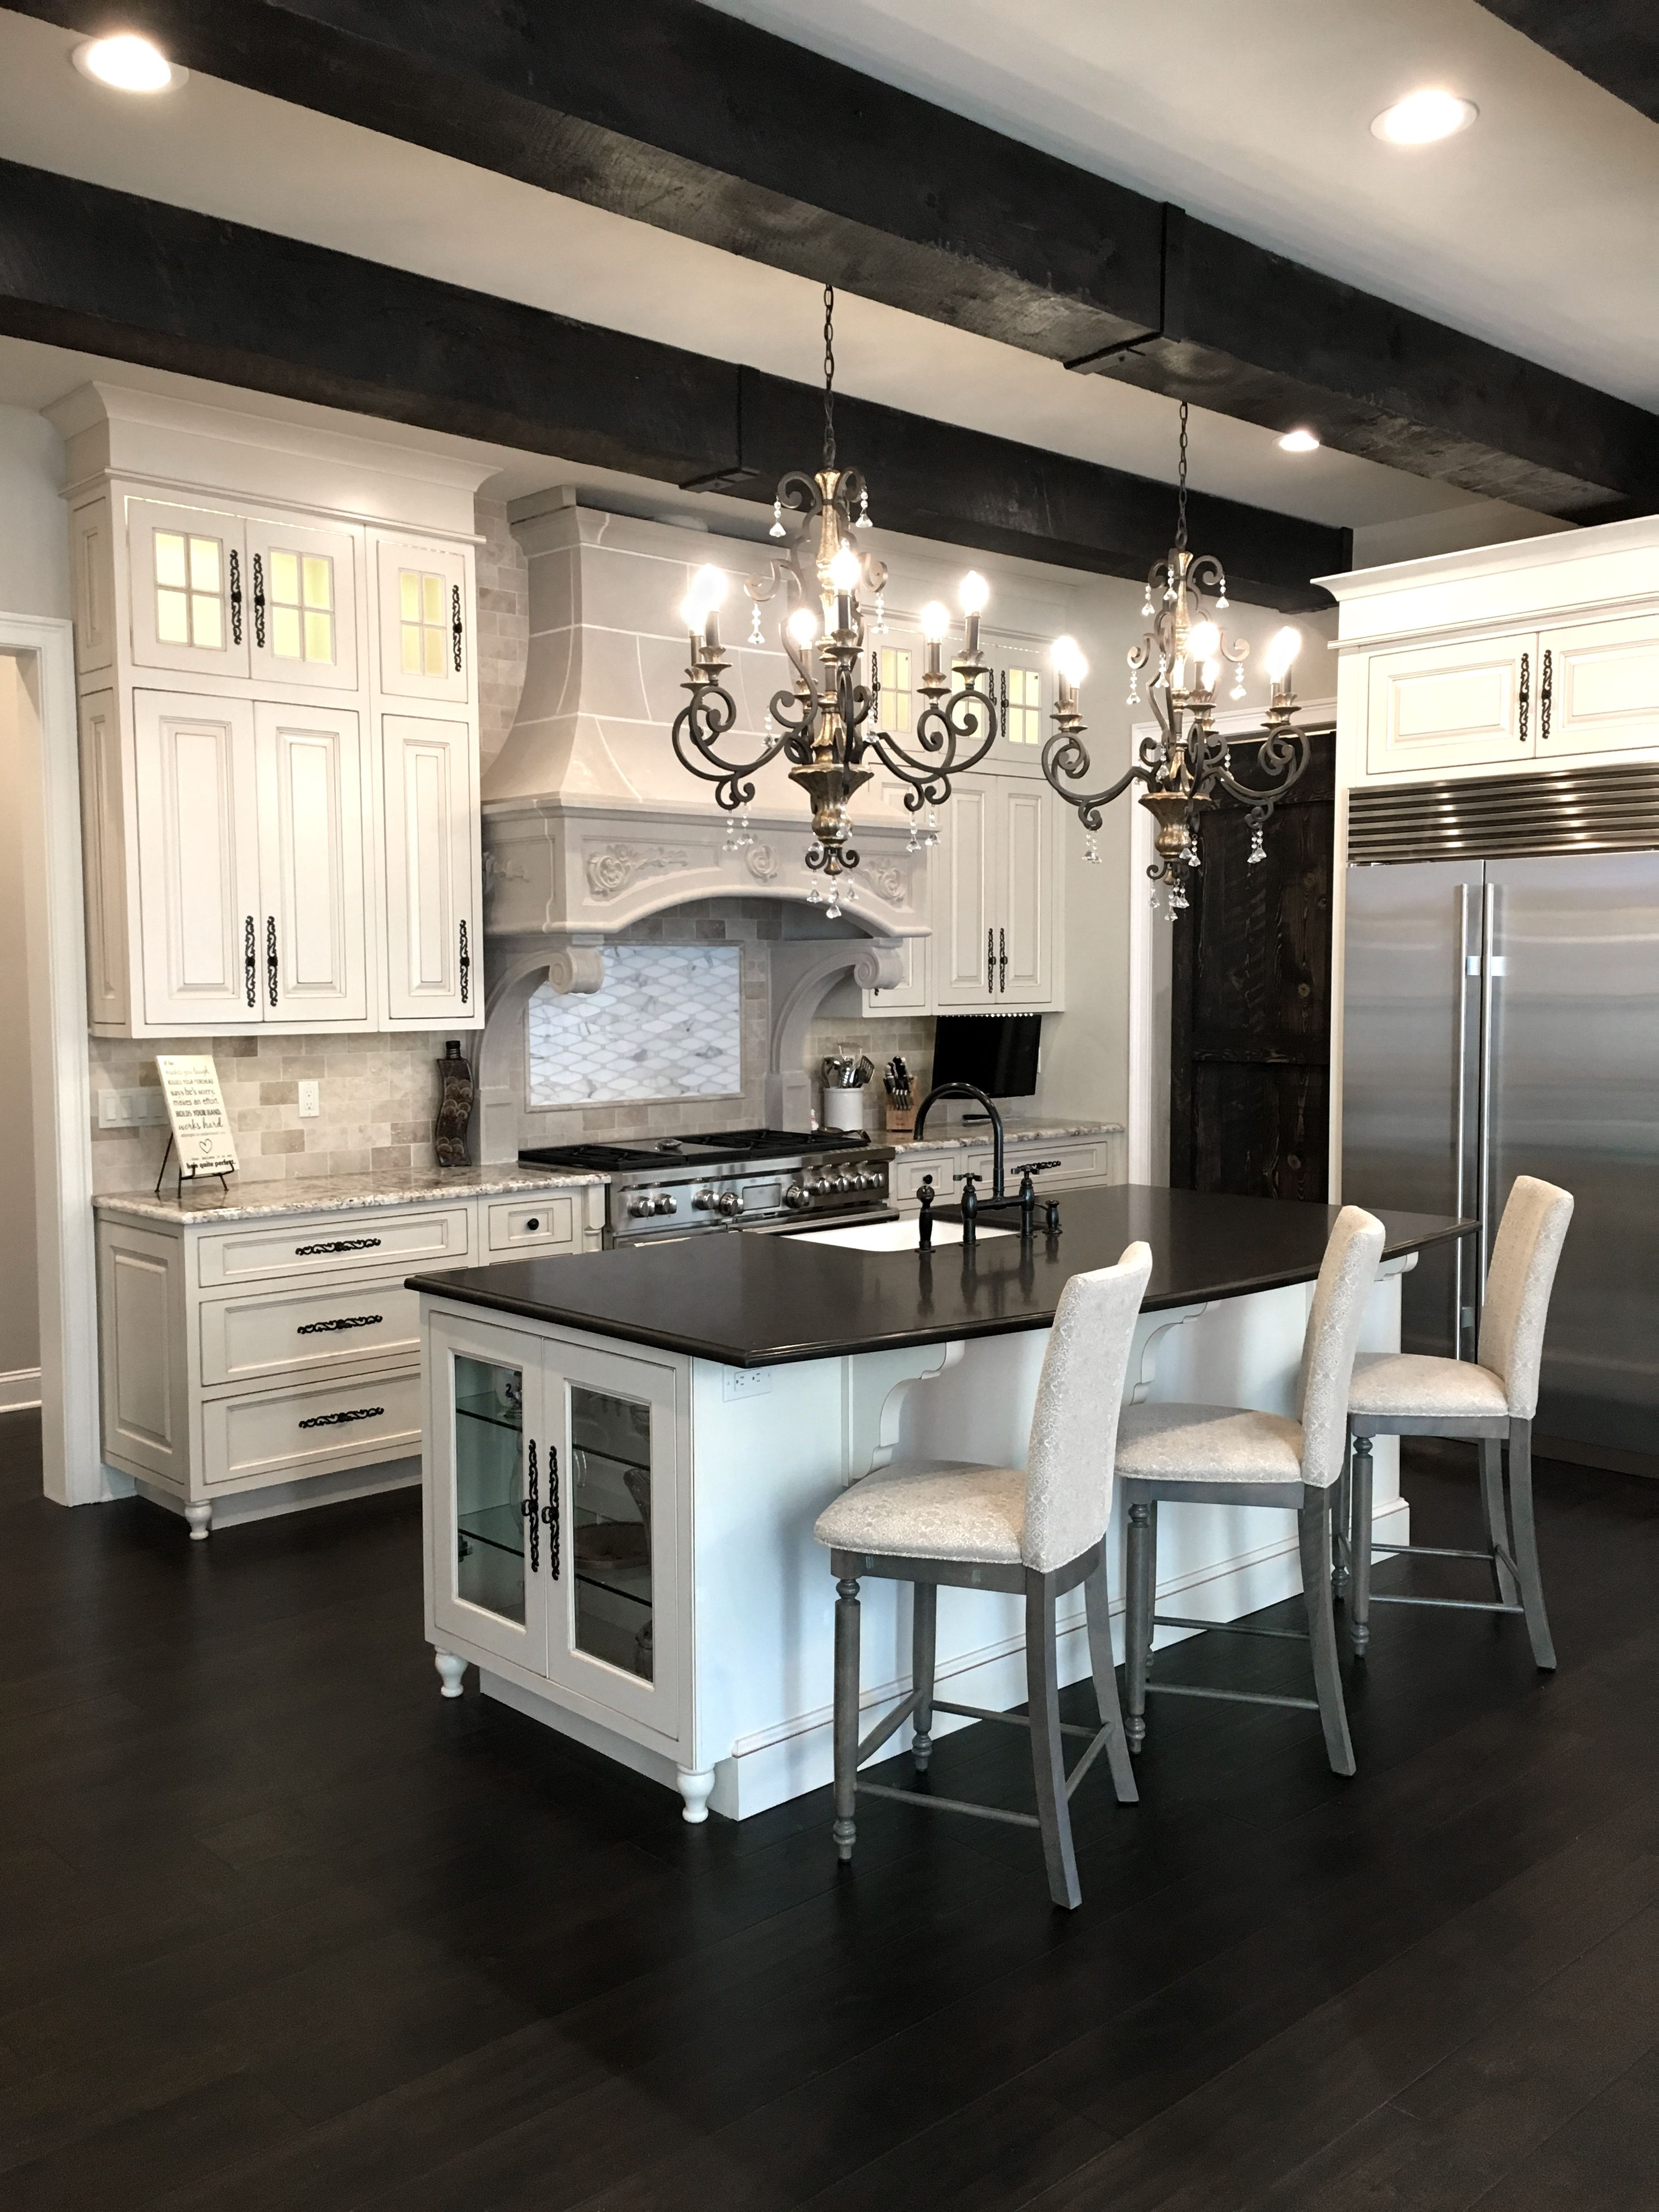 Dark Wood Country Kitchen french country kitchen, wood beam ceiling, kitchen island, dark